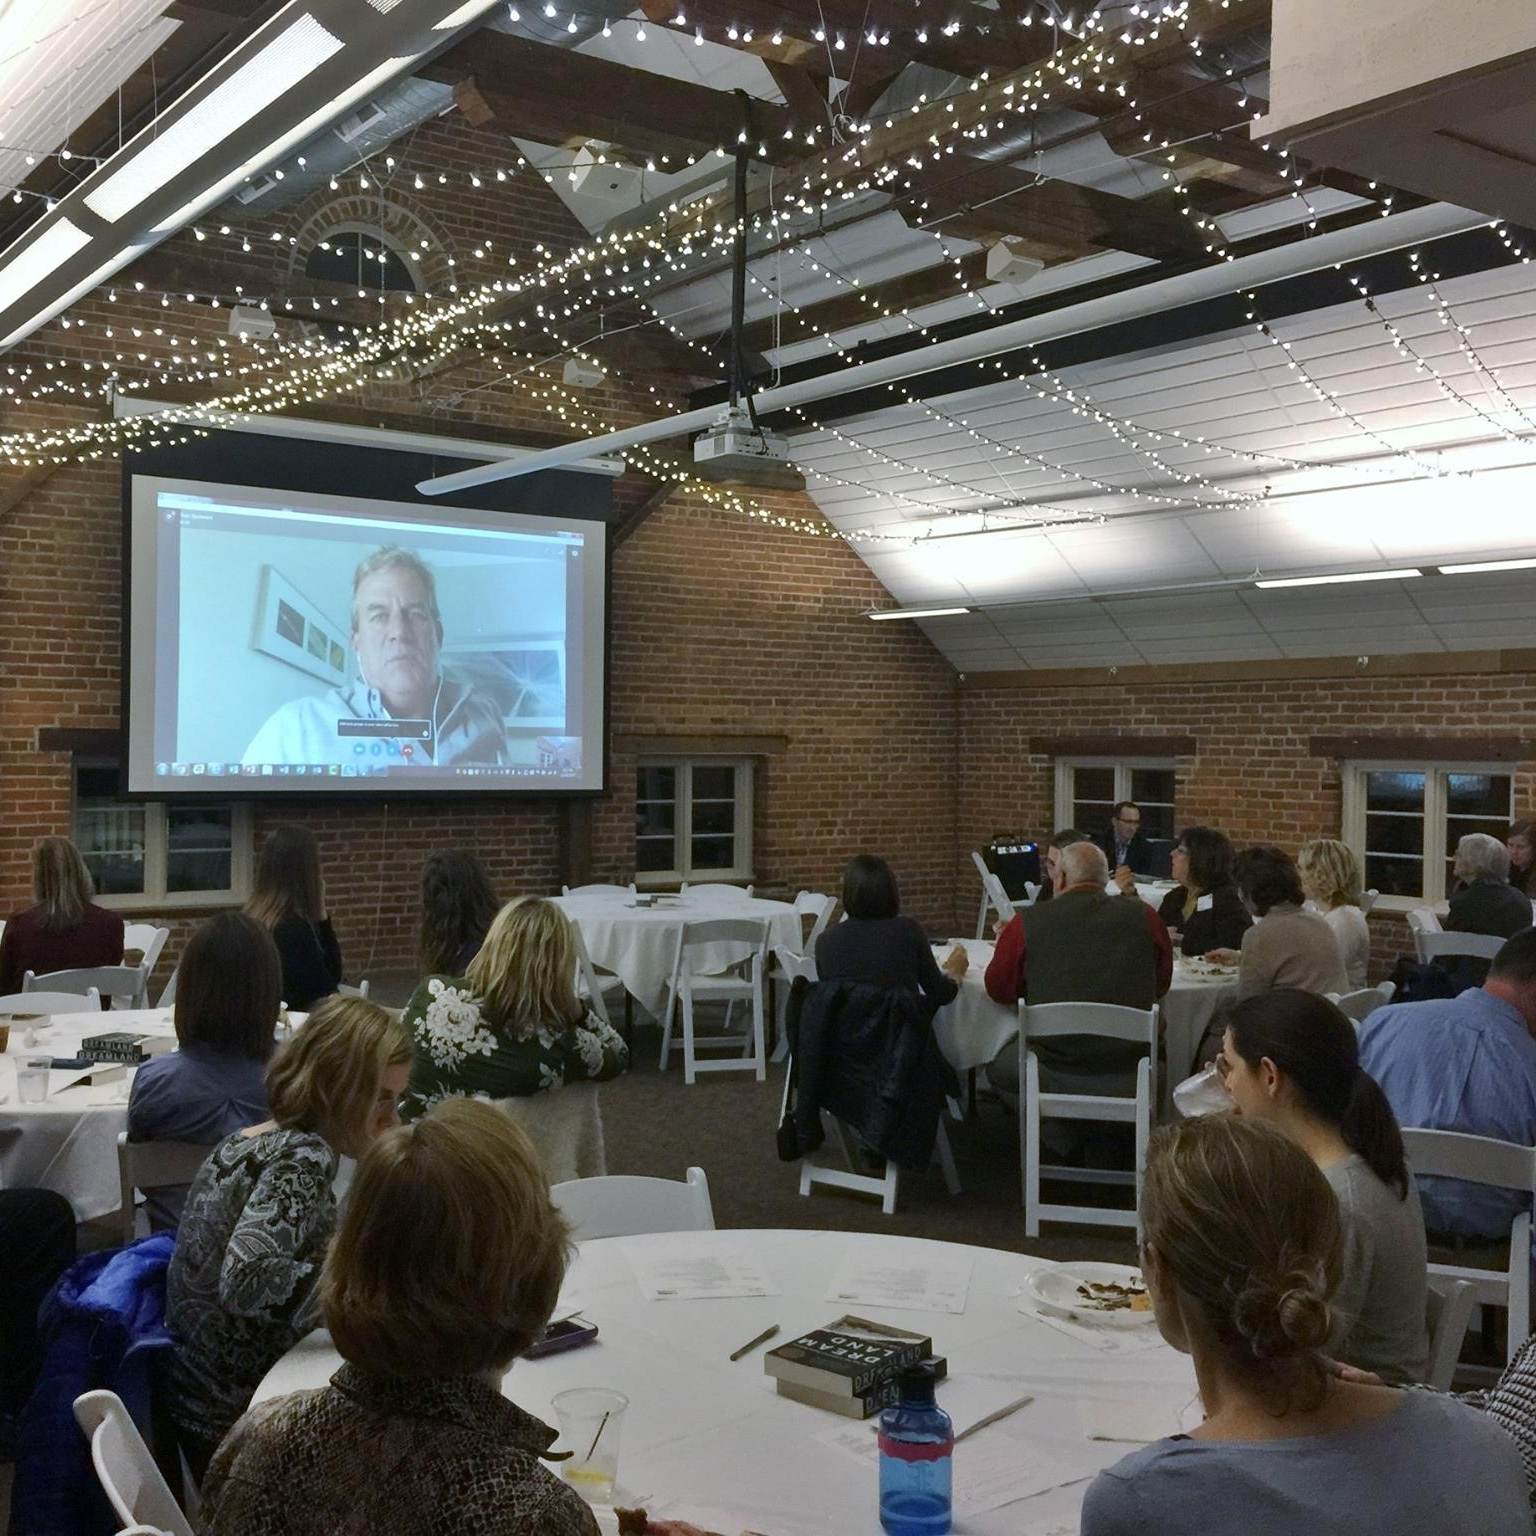 Using the book Dreamland and its historical overview of opiates in America as a backdrop, author Sam Quinones joined a family medicine discussion via Skype to offer his outlook, stressing critical cross-discipline collaboration in communities.